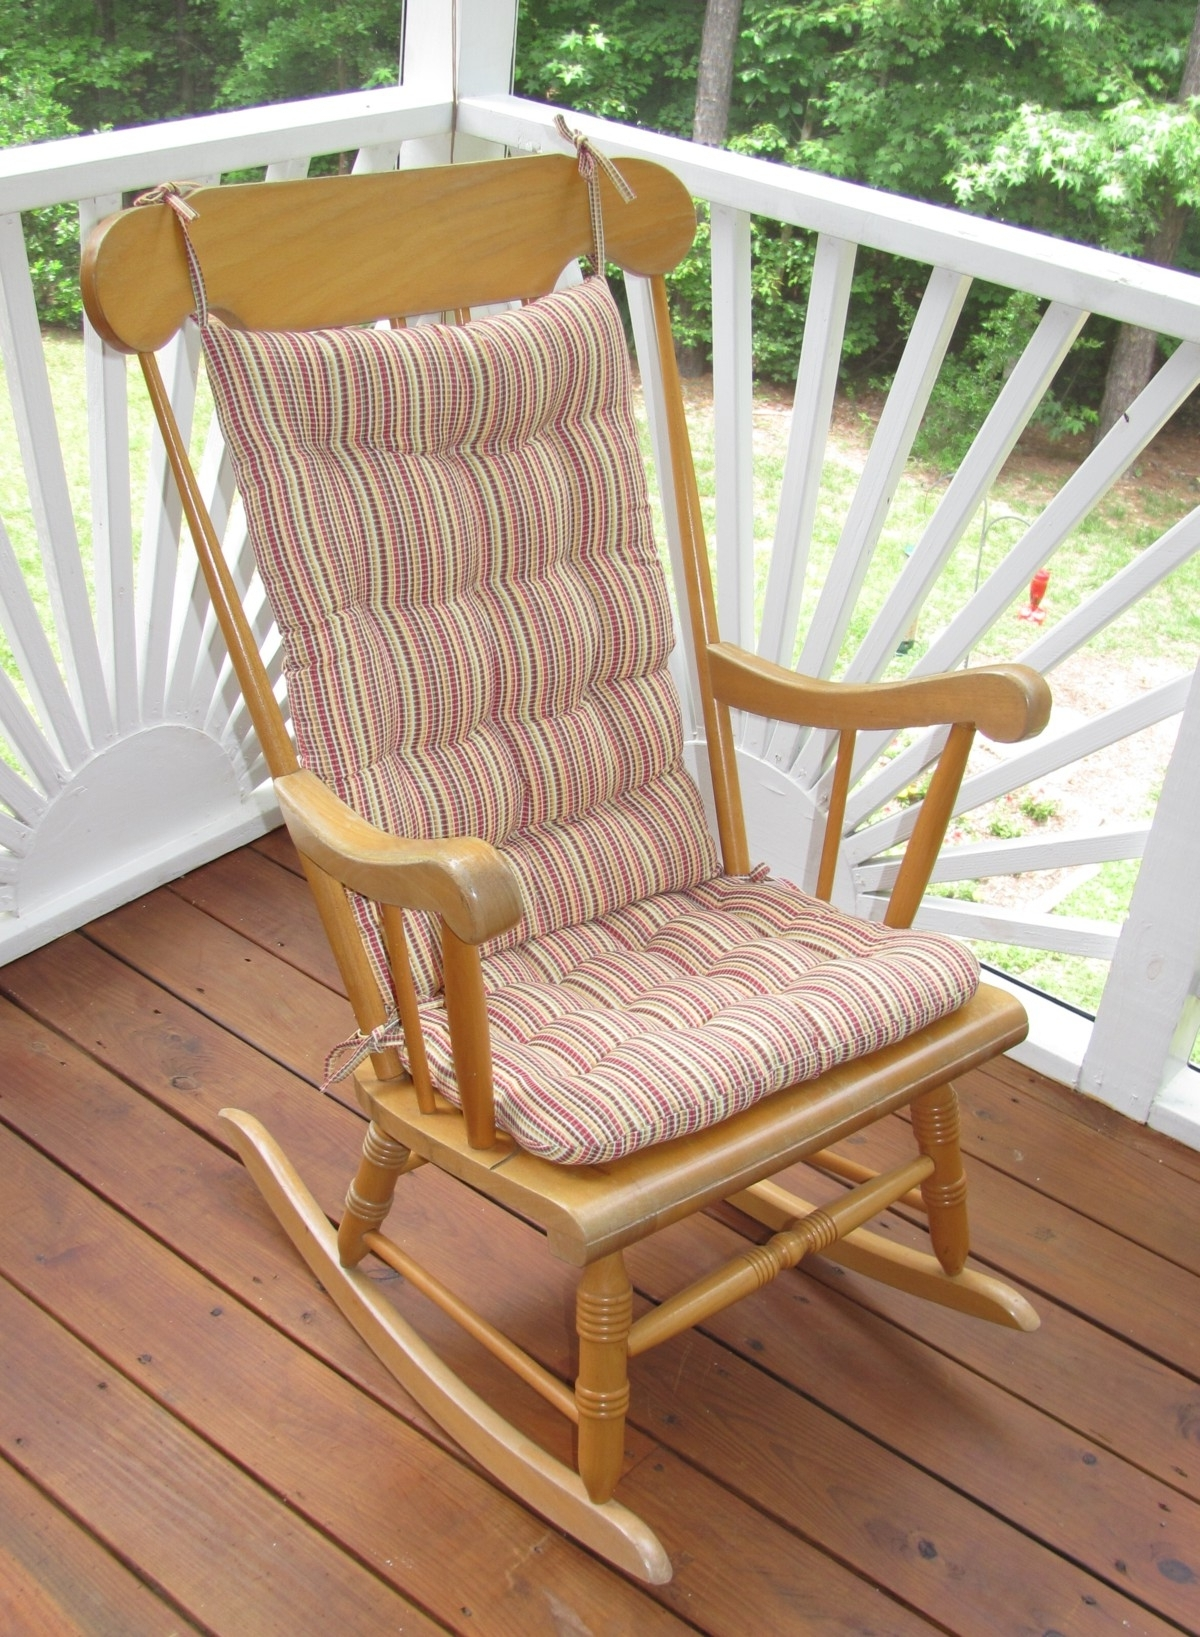 Outdoor Rocking Chair Cushions Type : Beautiful Outdoor Rocking With Current Outdoor Rocking Chairs With Cushions (View 10 of 15)